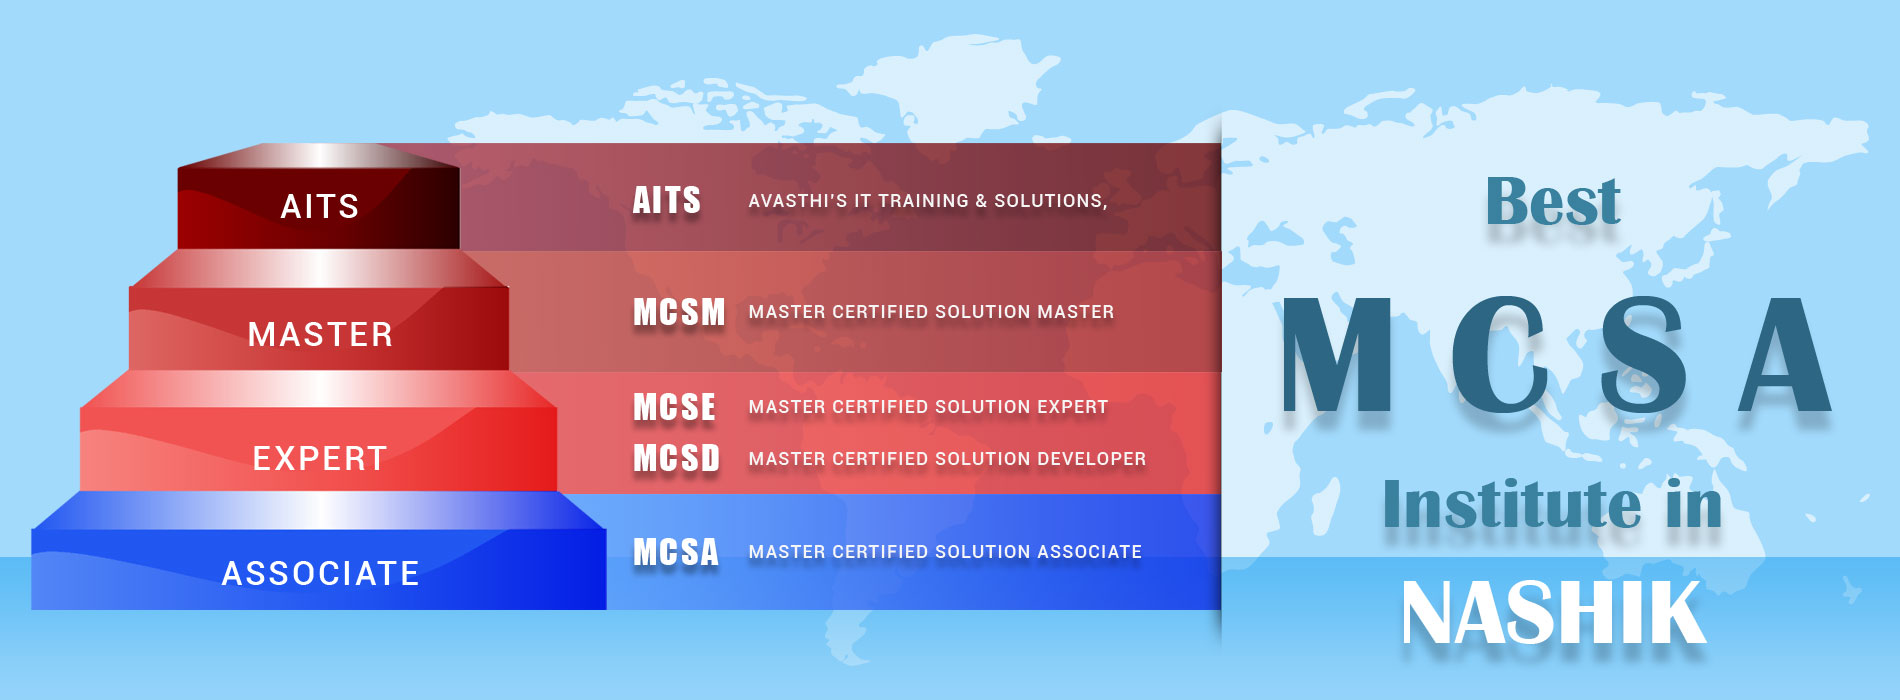 MCSA Training institute in nashik